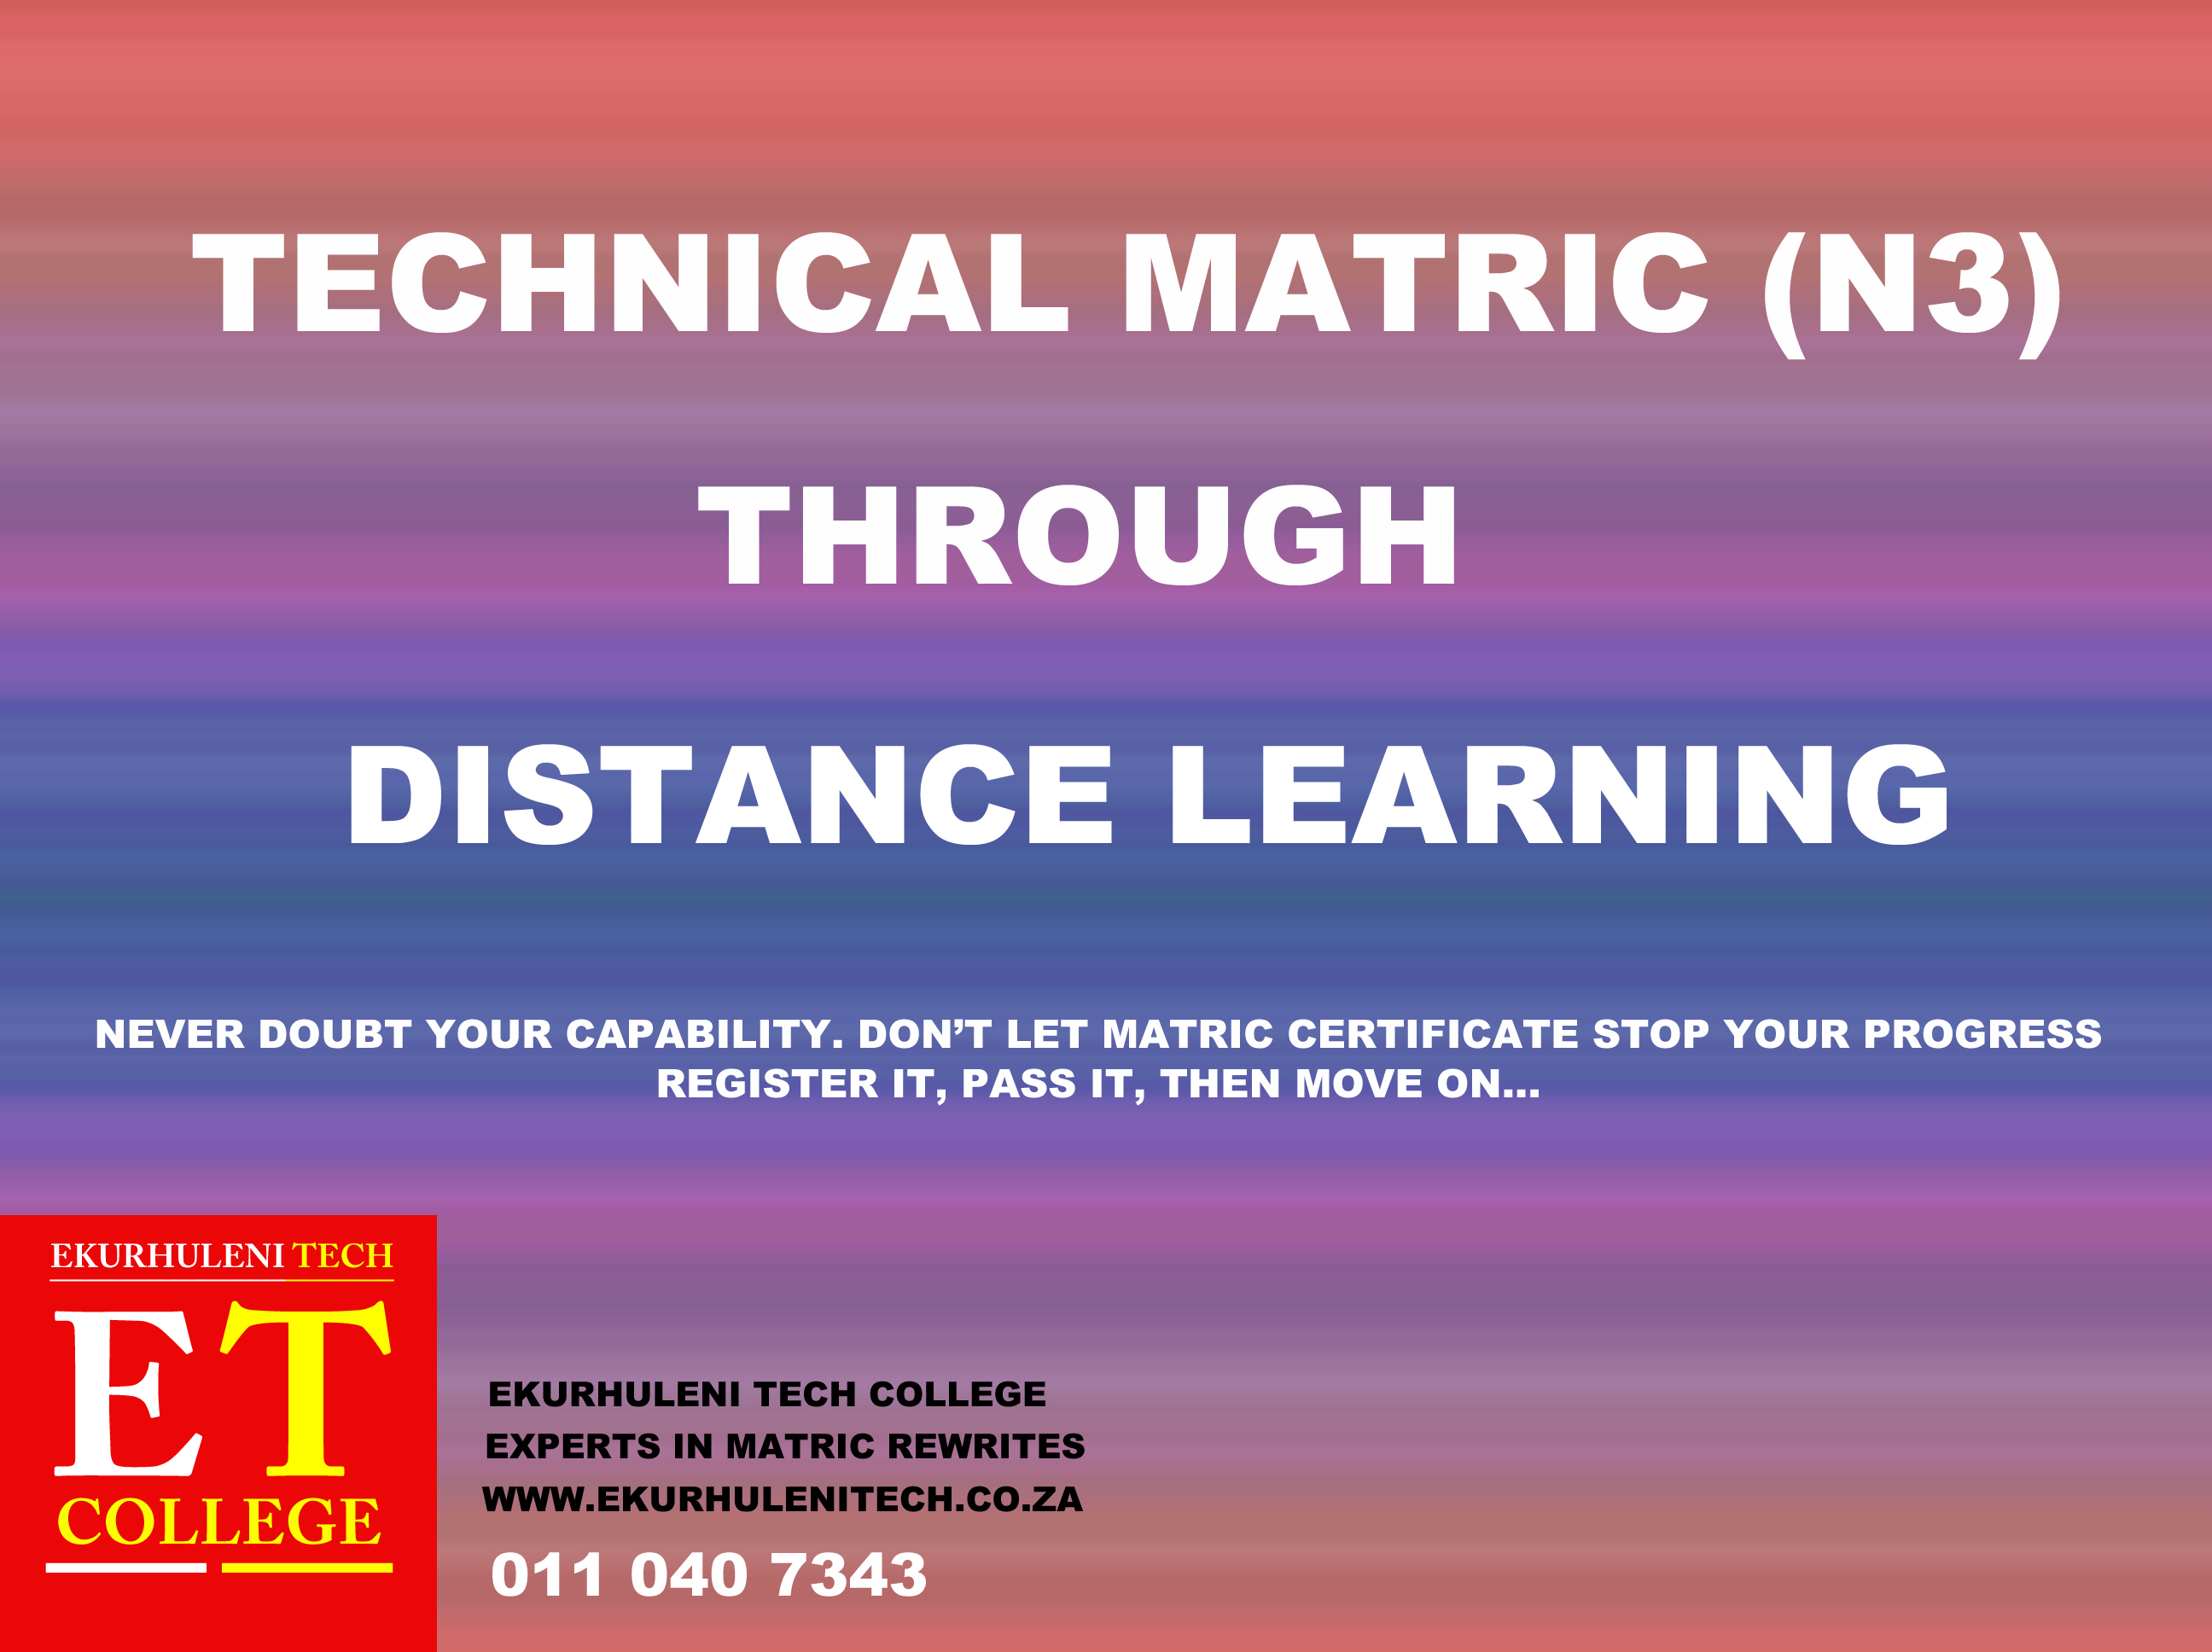 Distance Learning_Ekurhuleni Tech College